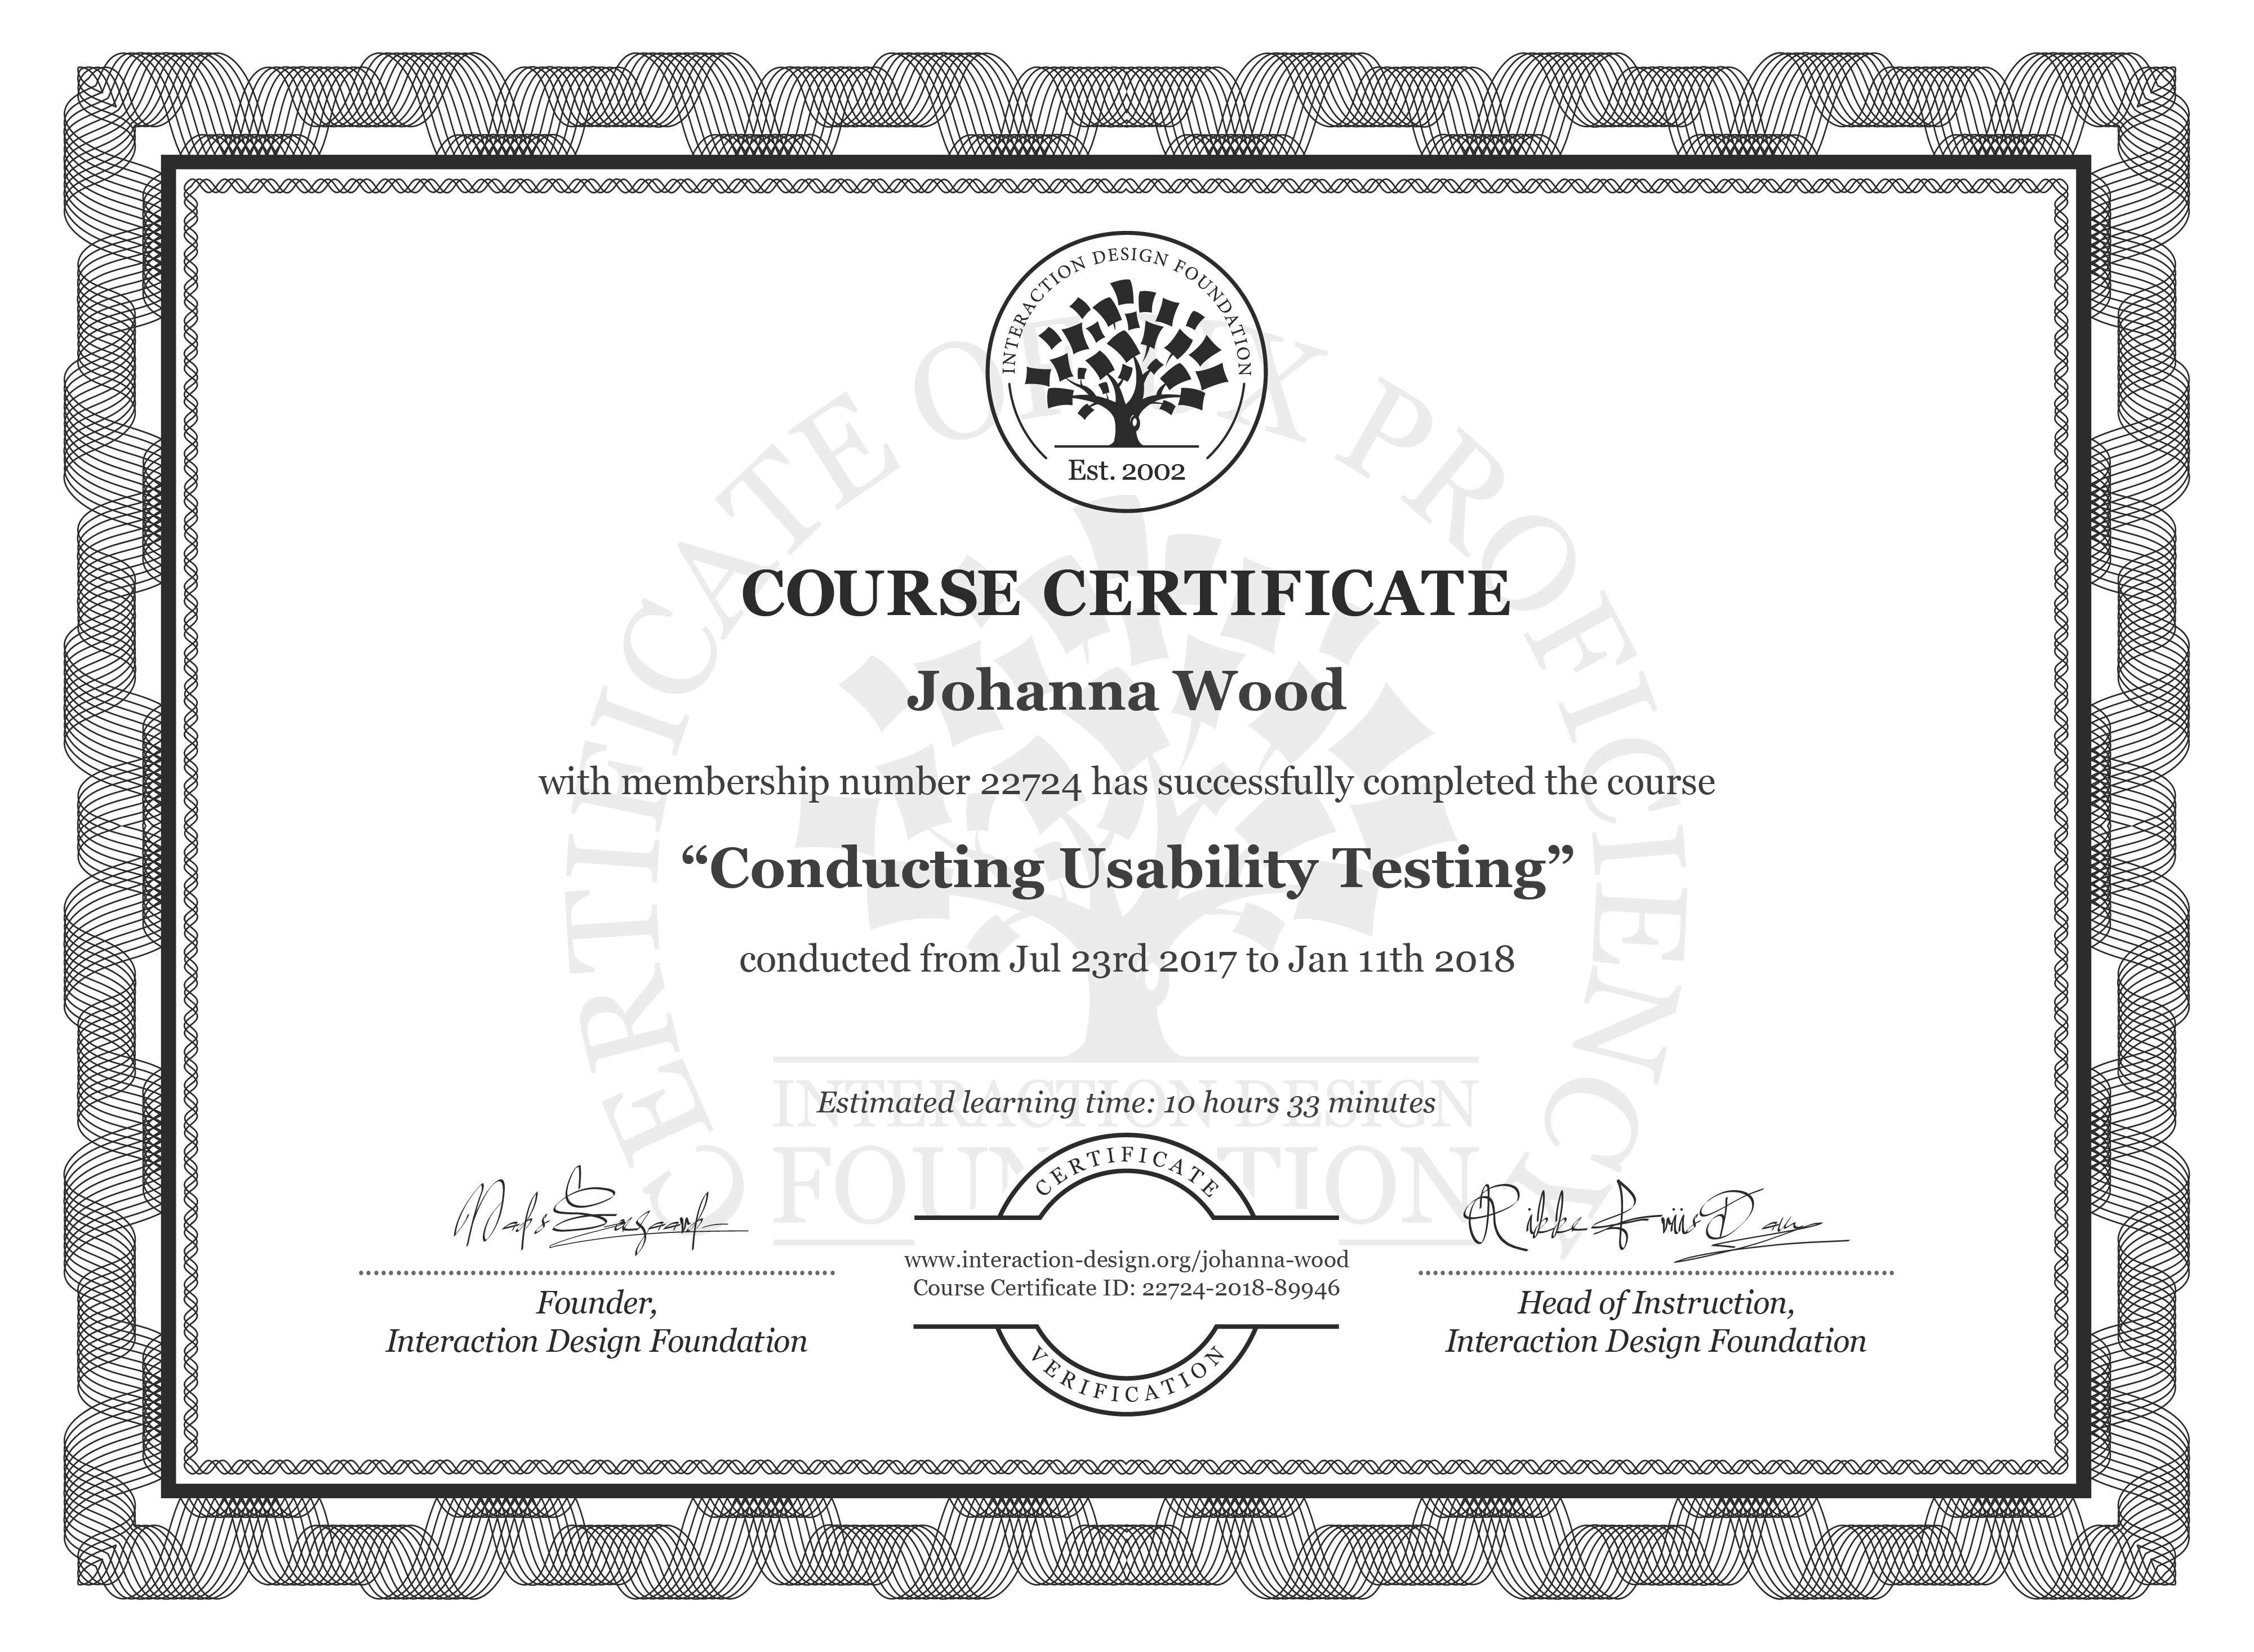 Johanna Wood's Course Certificate: Conducting Usability Testing